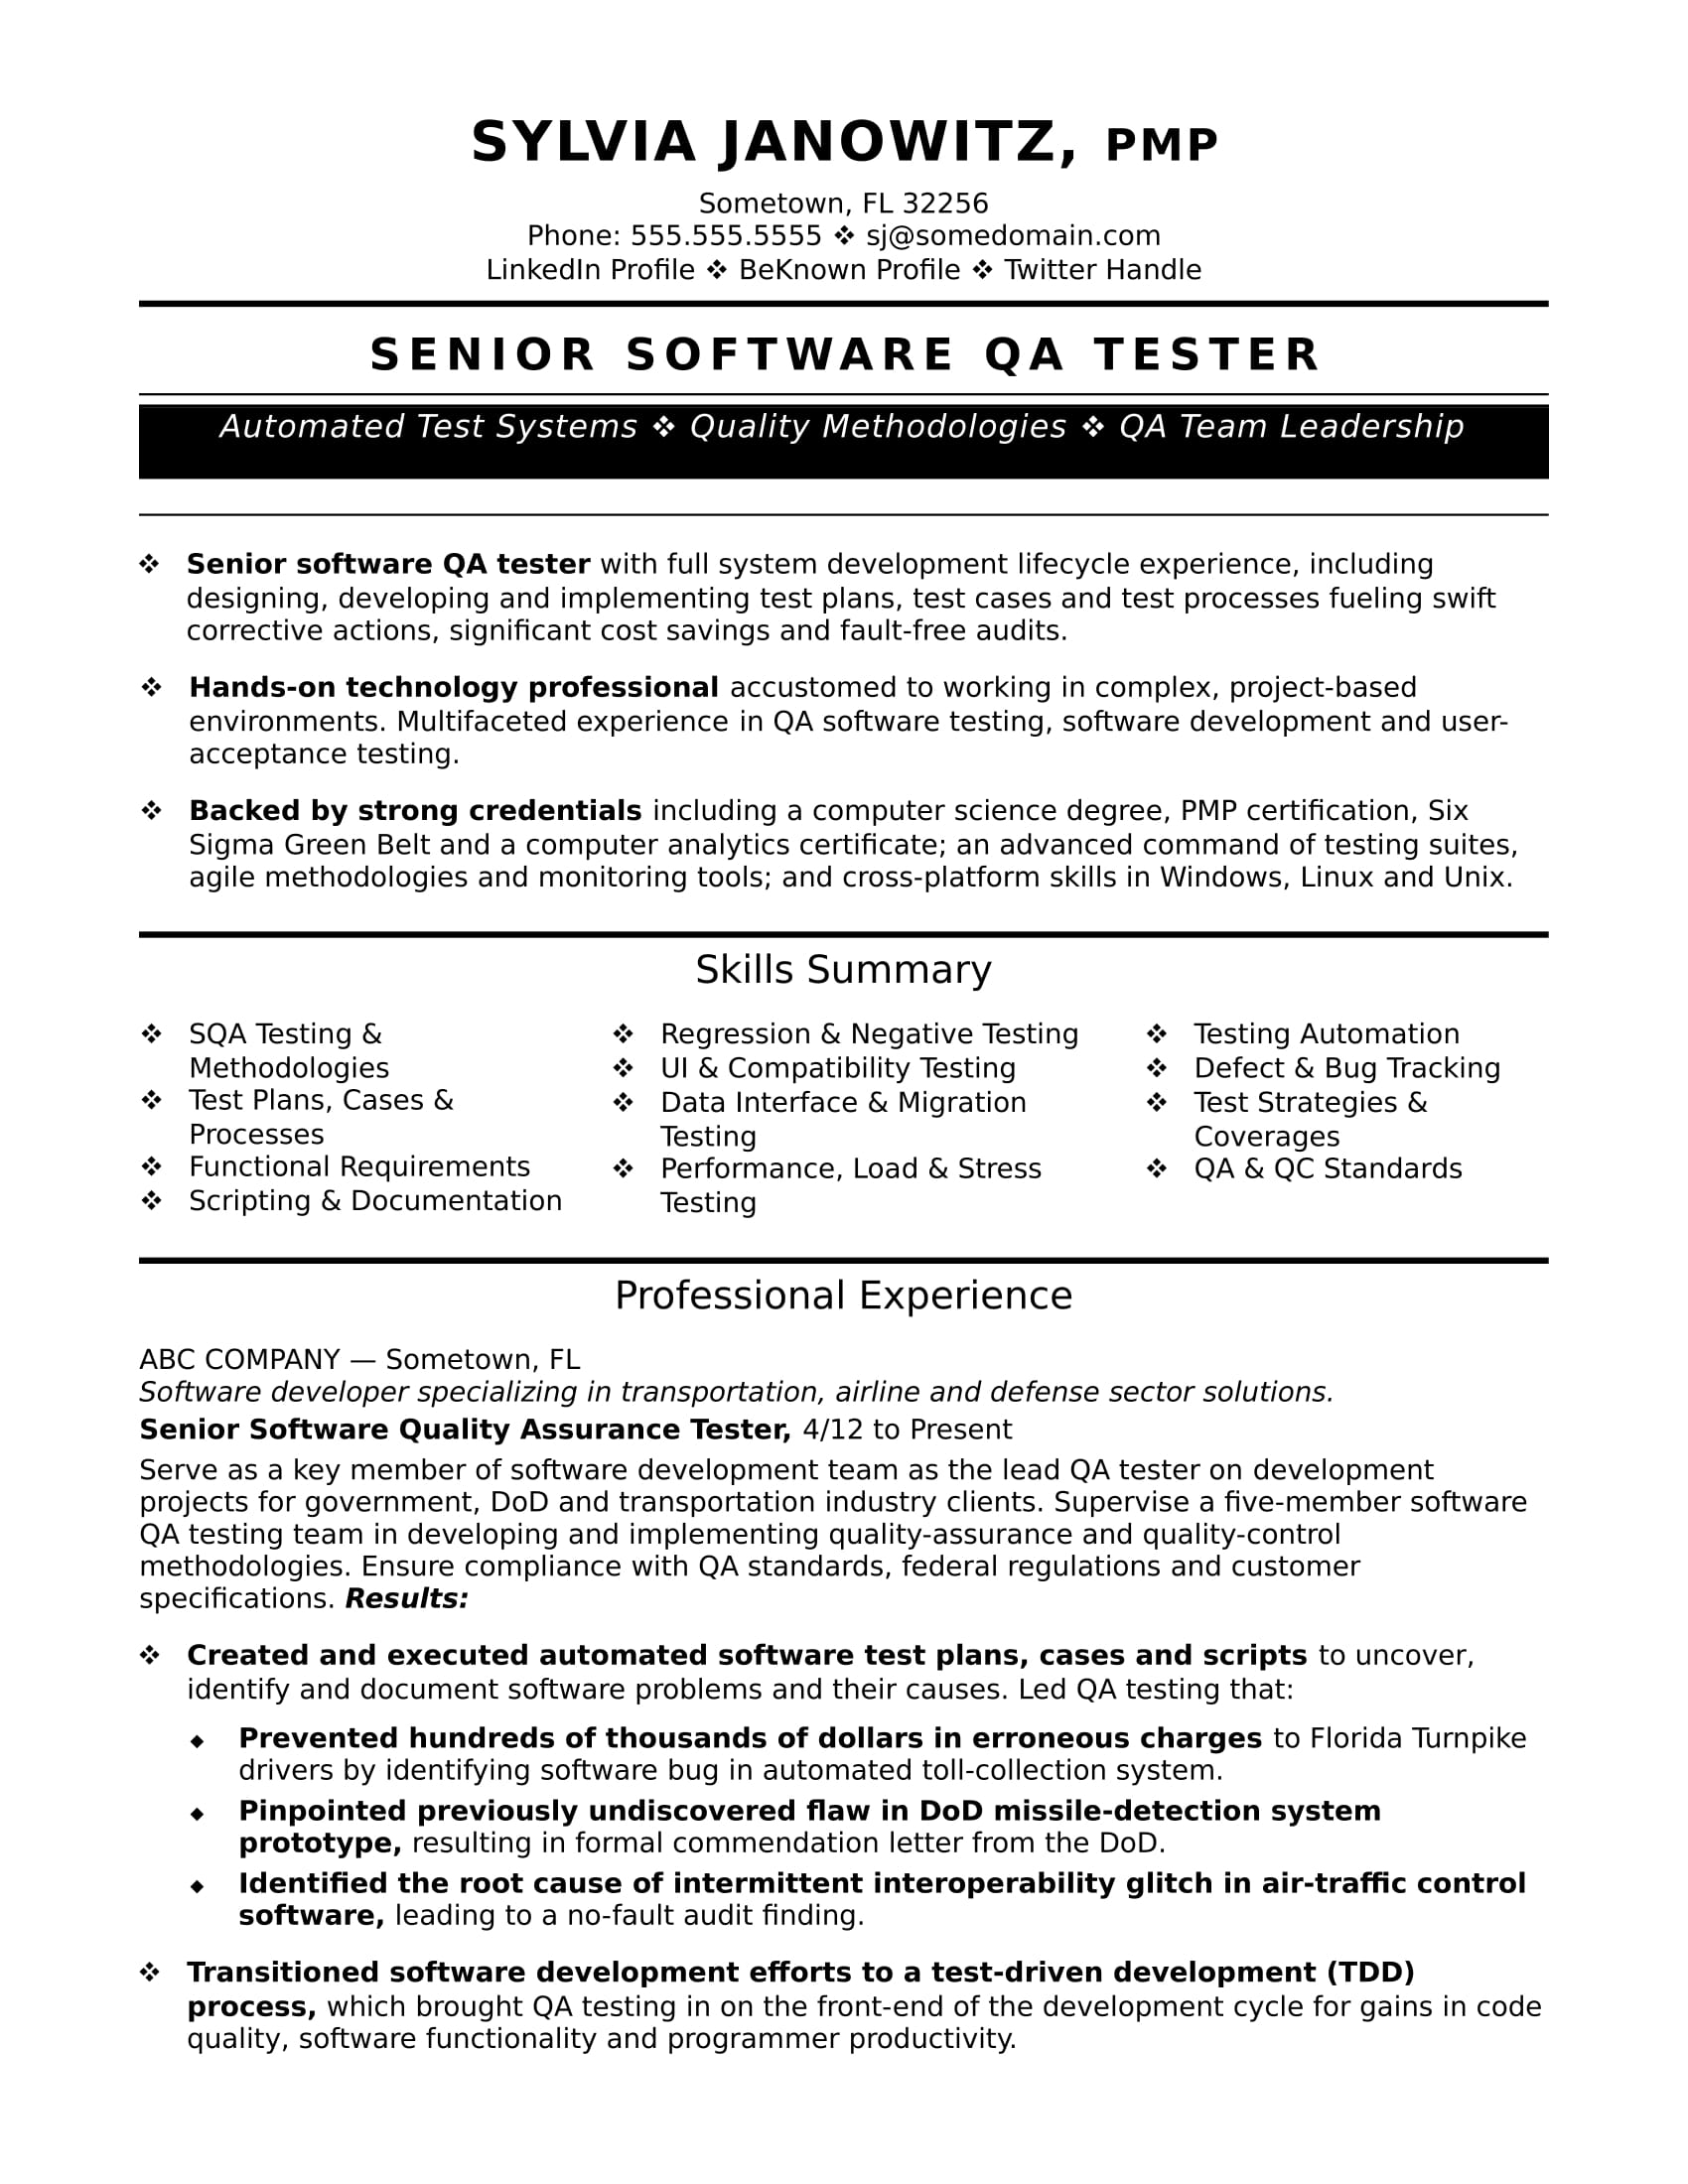 Experienced QA Software Tester Resume Sample  Qa Resume Sample